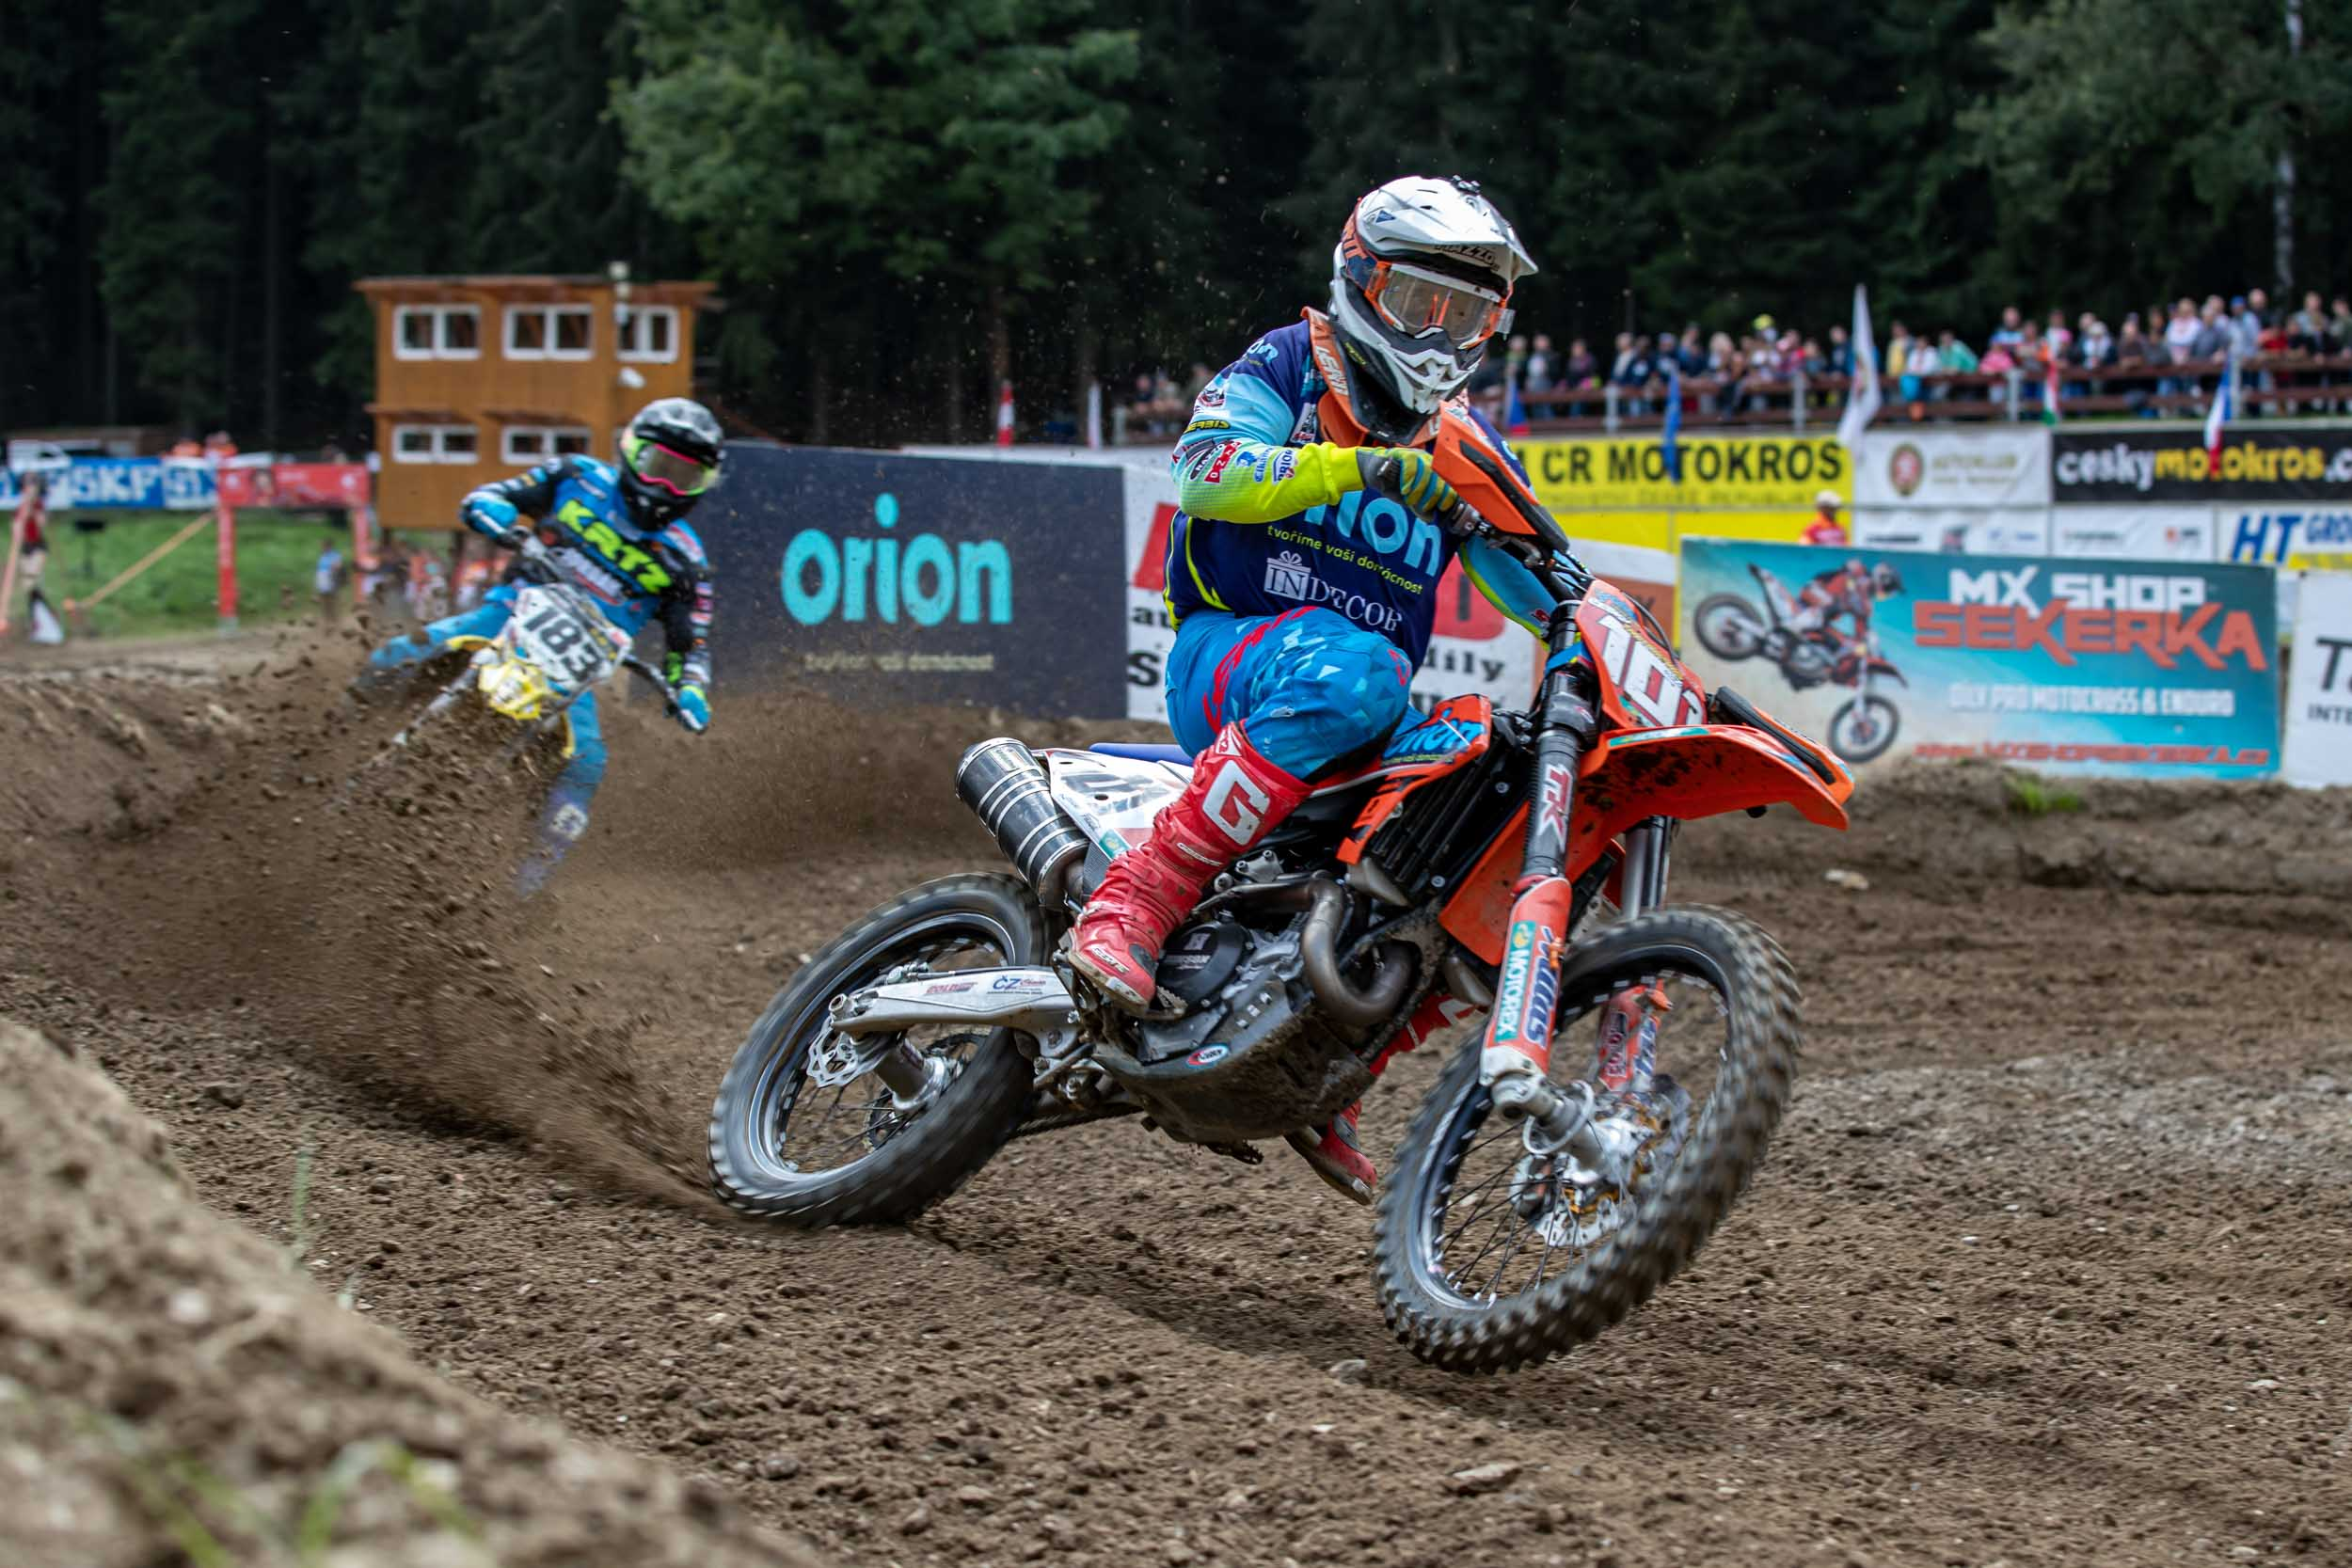 photo radeklavicka mx mmcr pacov 2020 1627